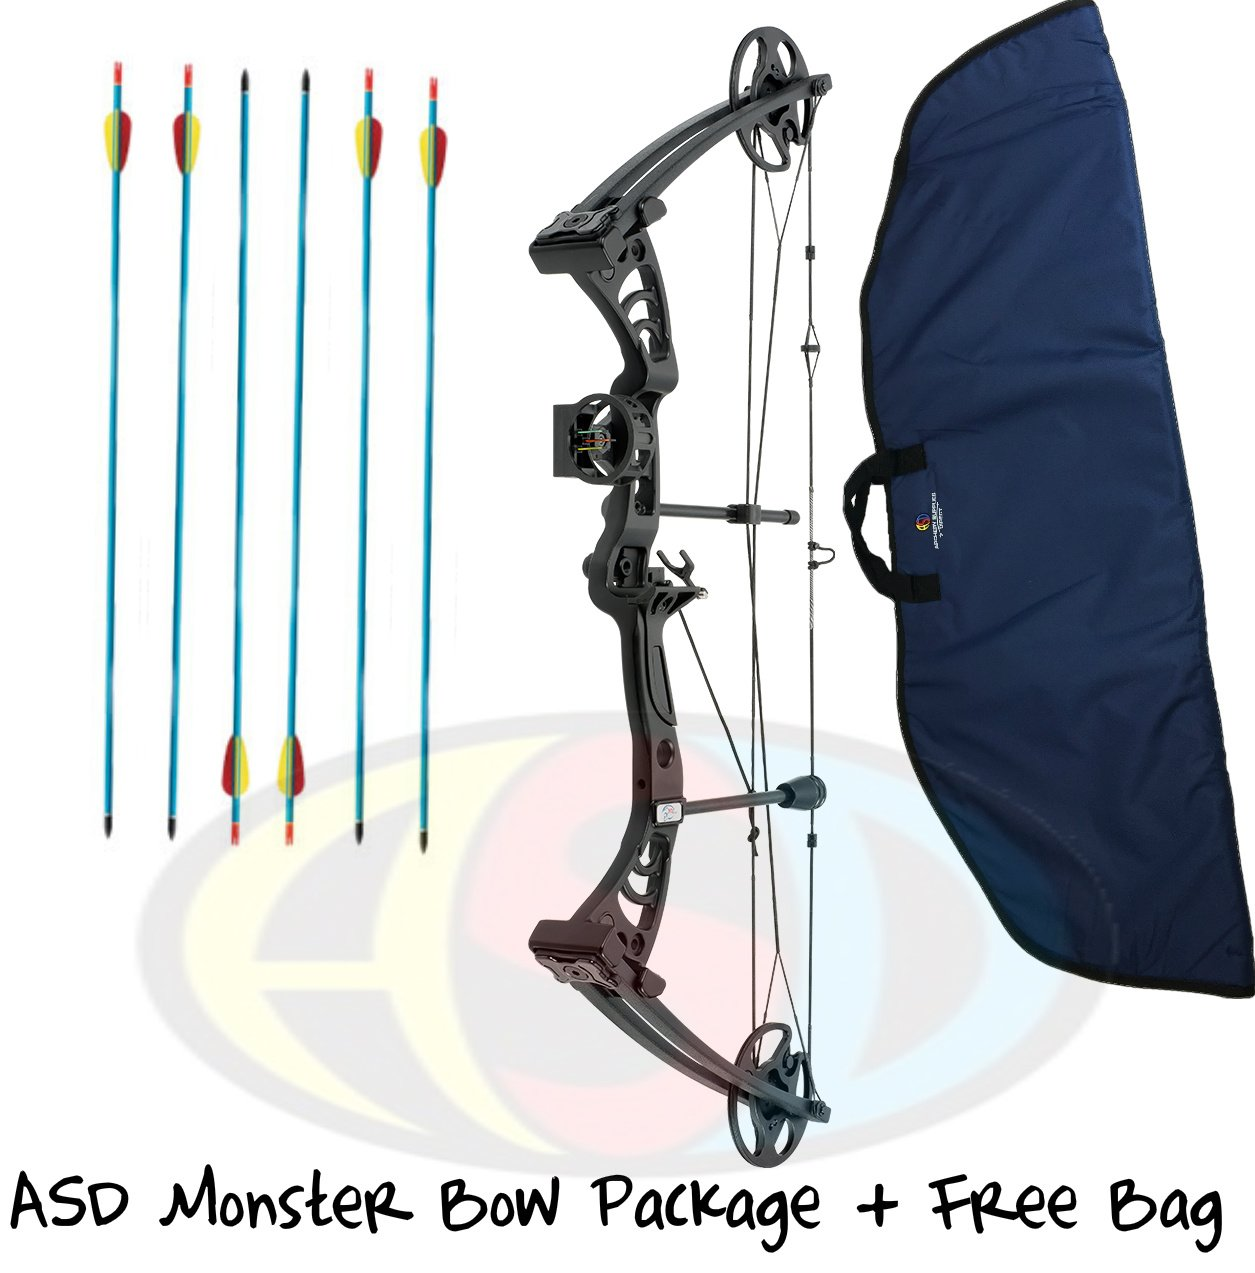 ASD Black Monster Compound Archery Bow 30-55Lbs 19-29